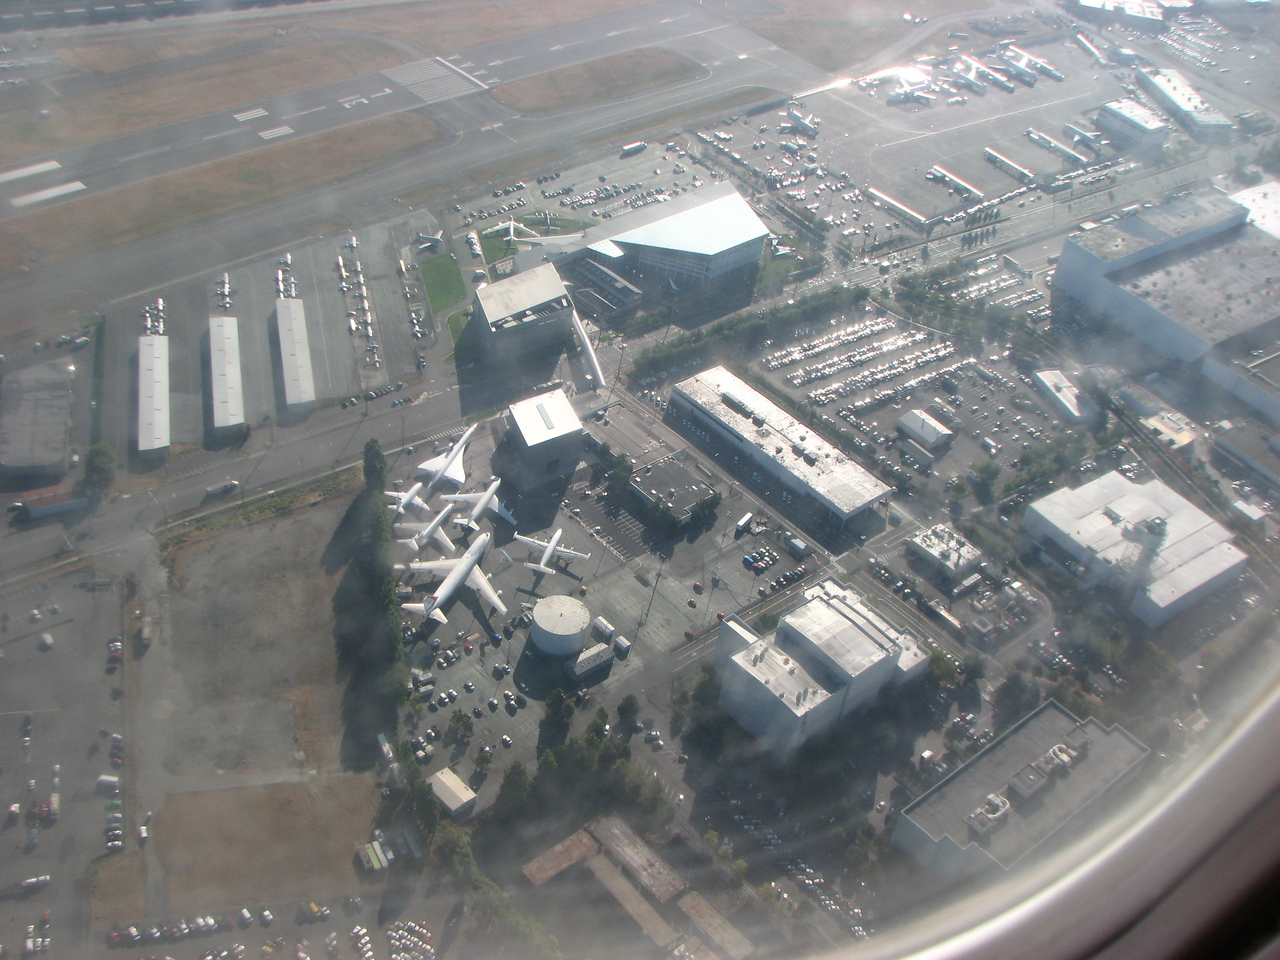 Over the Boeing Museum.